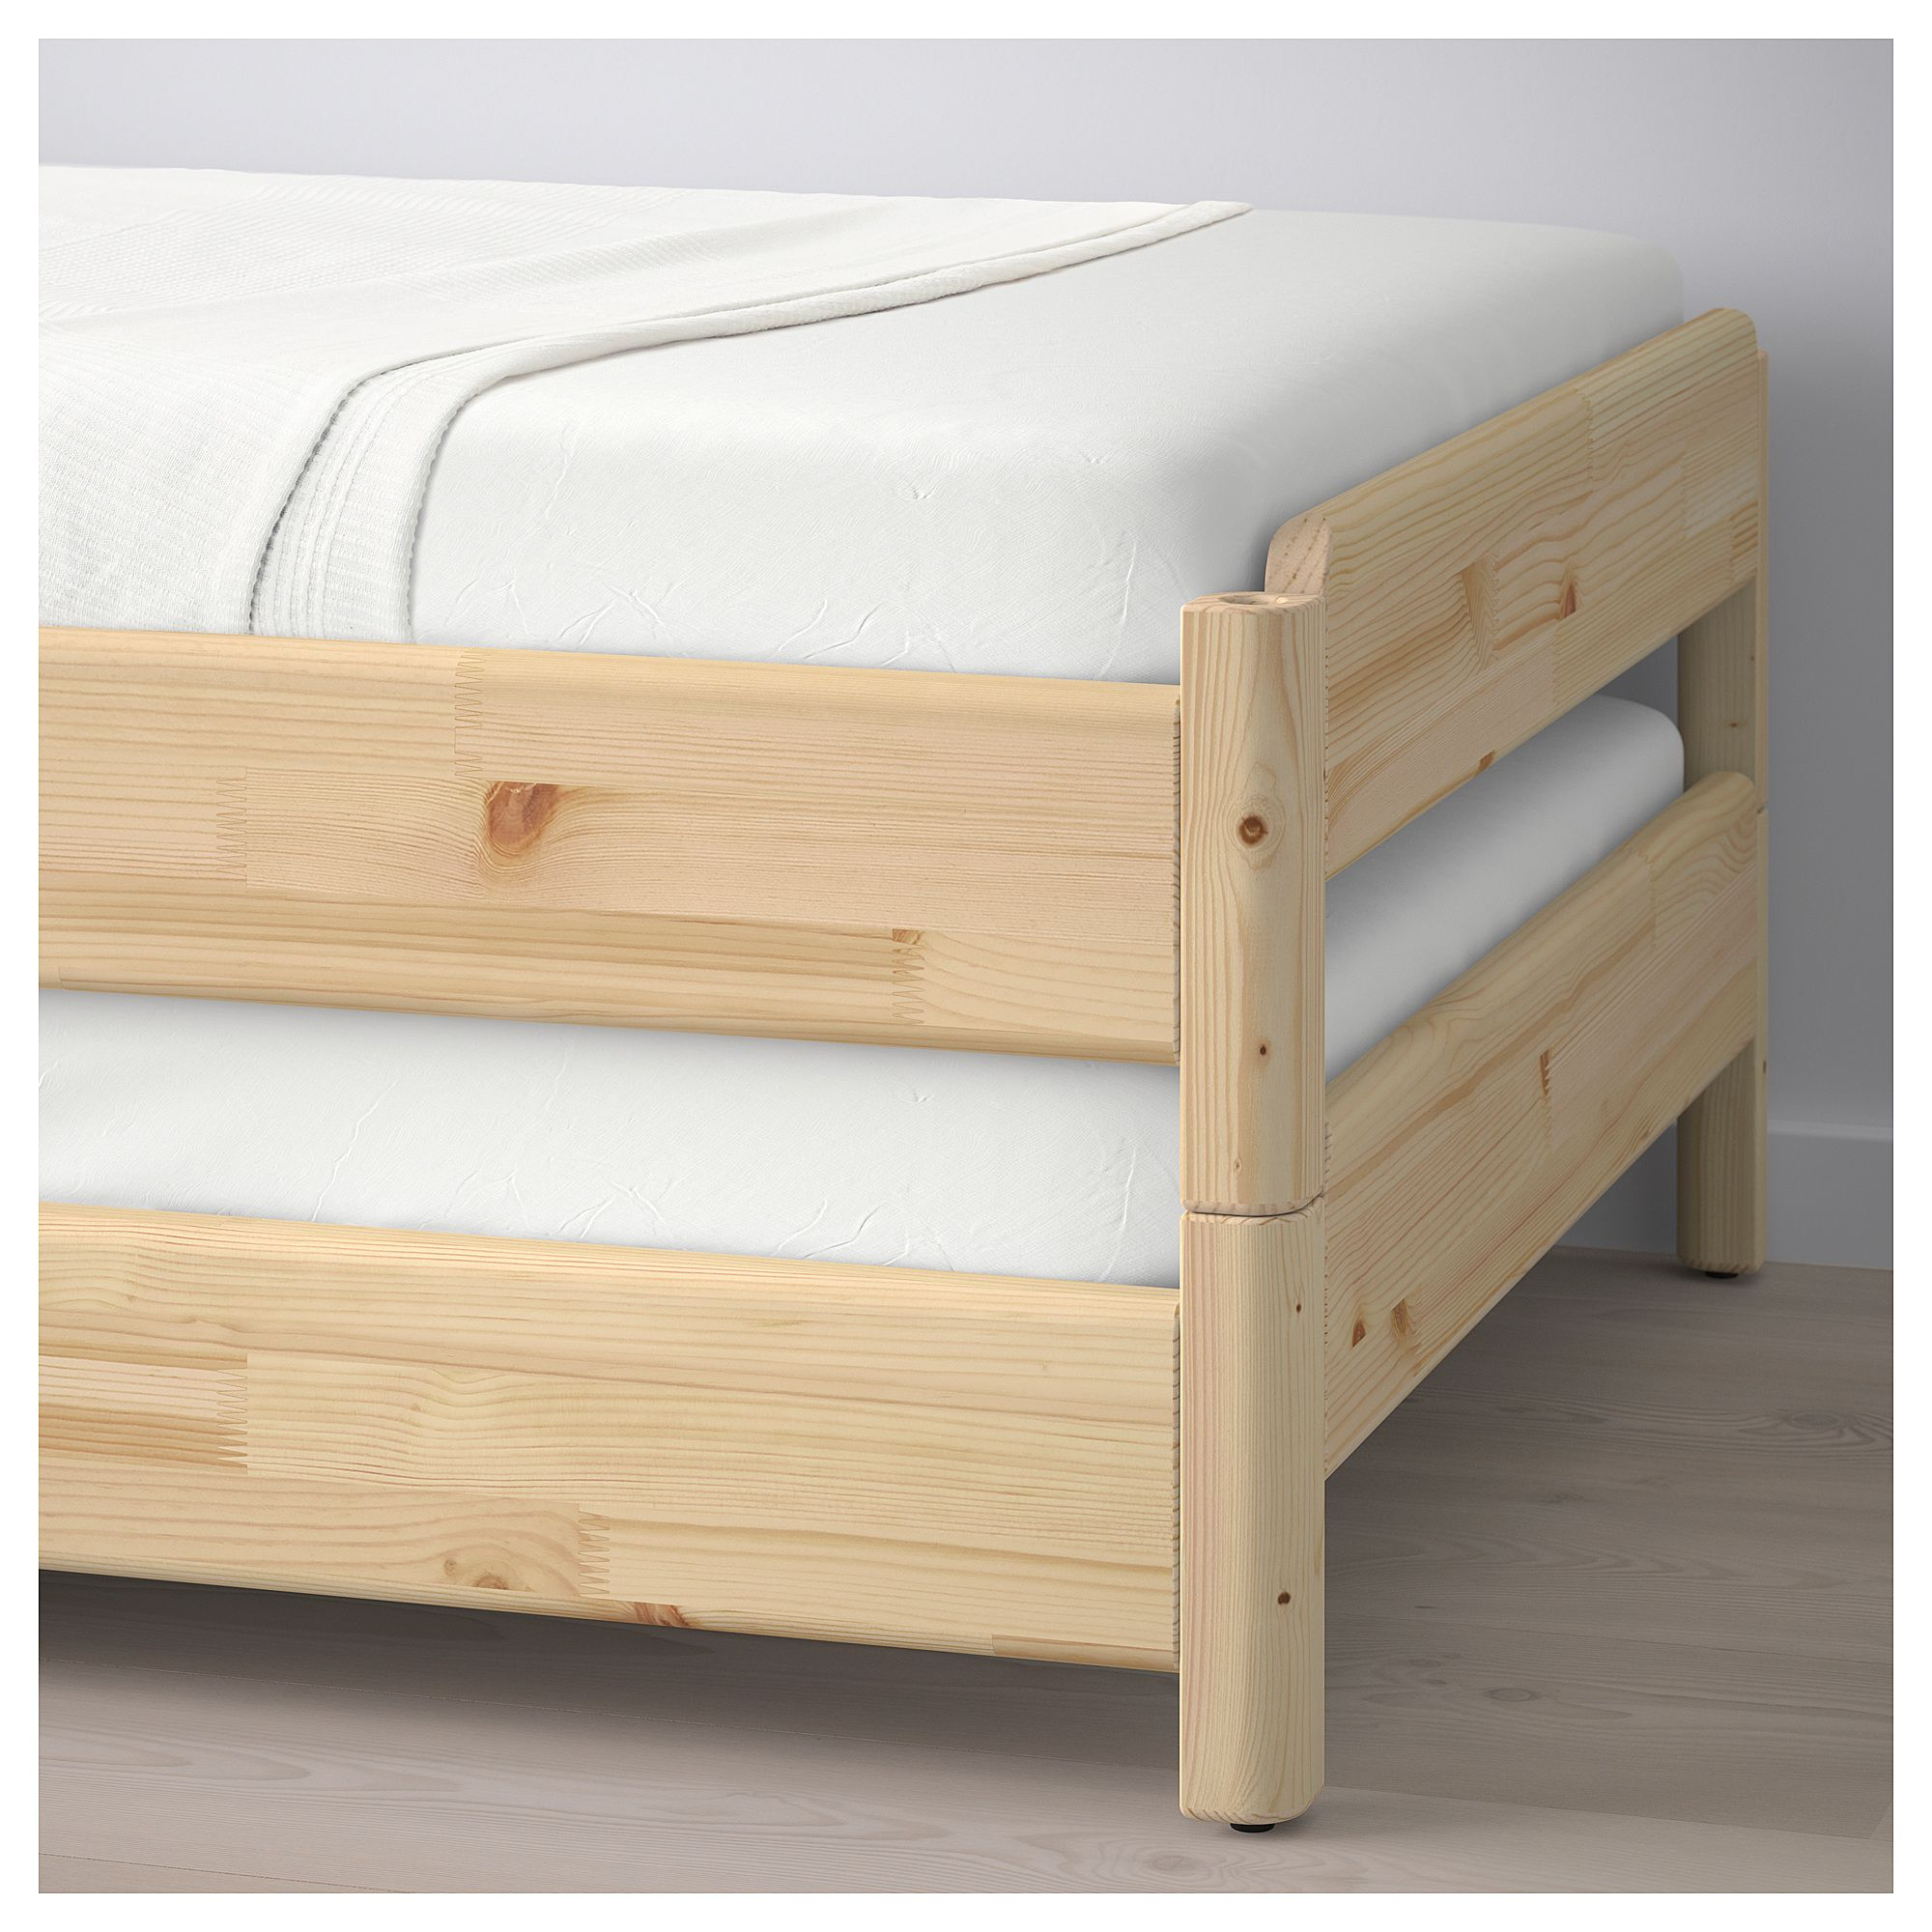 Lits Empilables Ikea Ikea UtÅker Stackable Bed With 2 Mattresses Pine